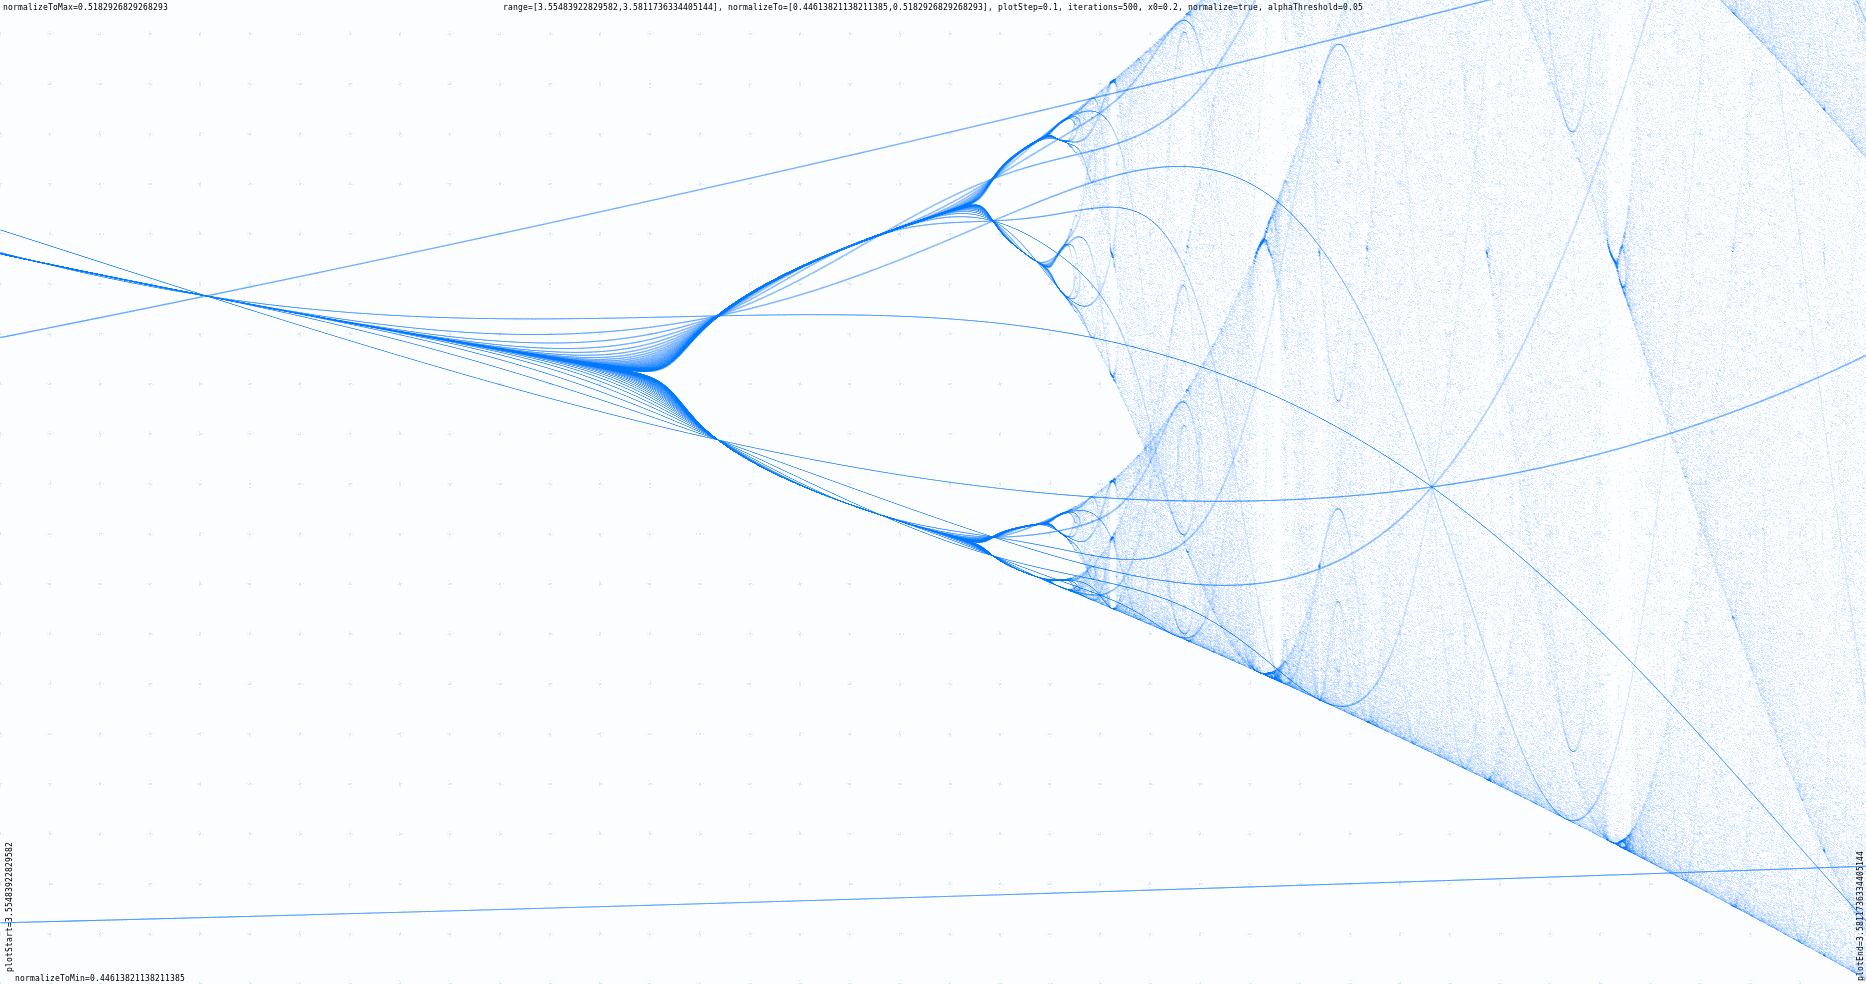 Plotting the Feigenbaum bifurcation